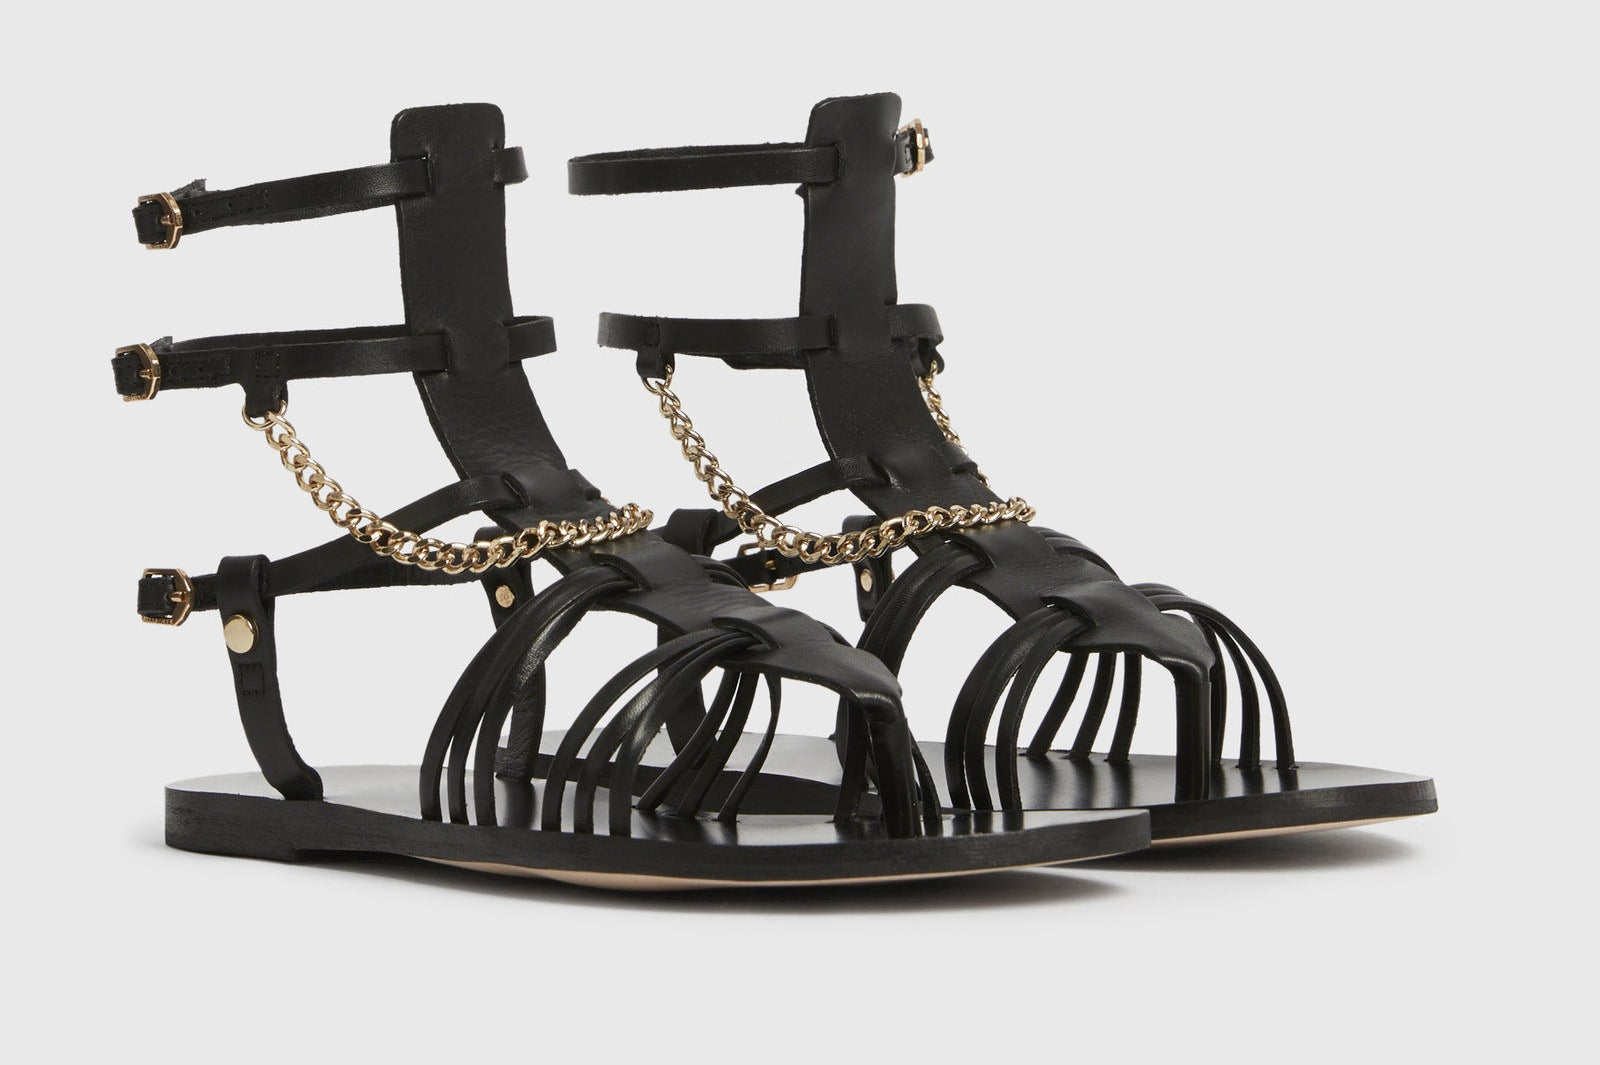 black gladiator style sandals with a gold tone chain as an accent and two straps that go right at the ankles